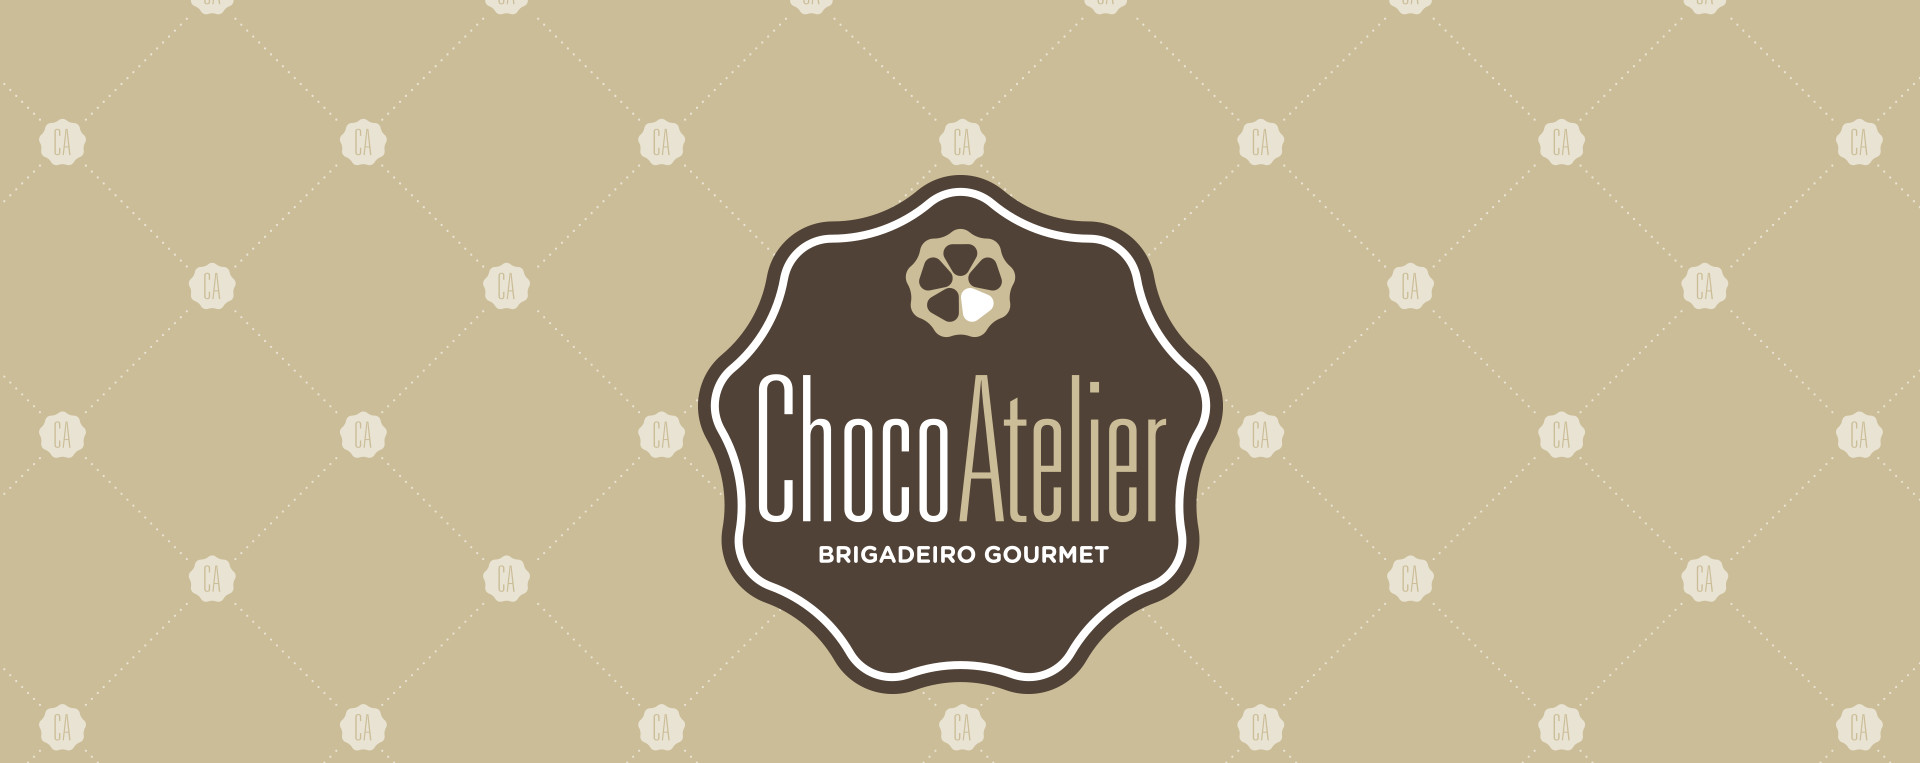 logotipo ChocoAtelier